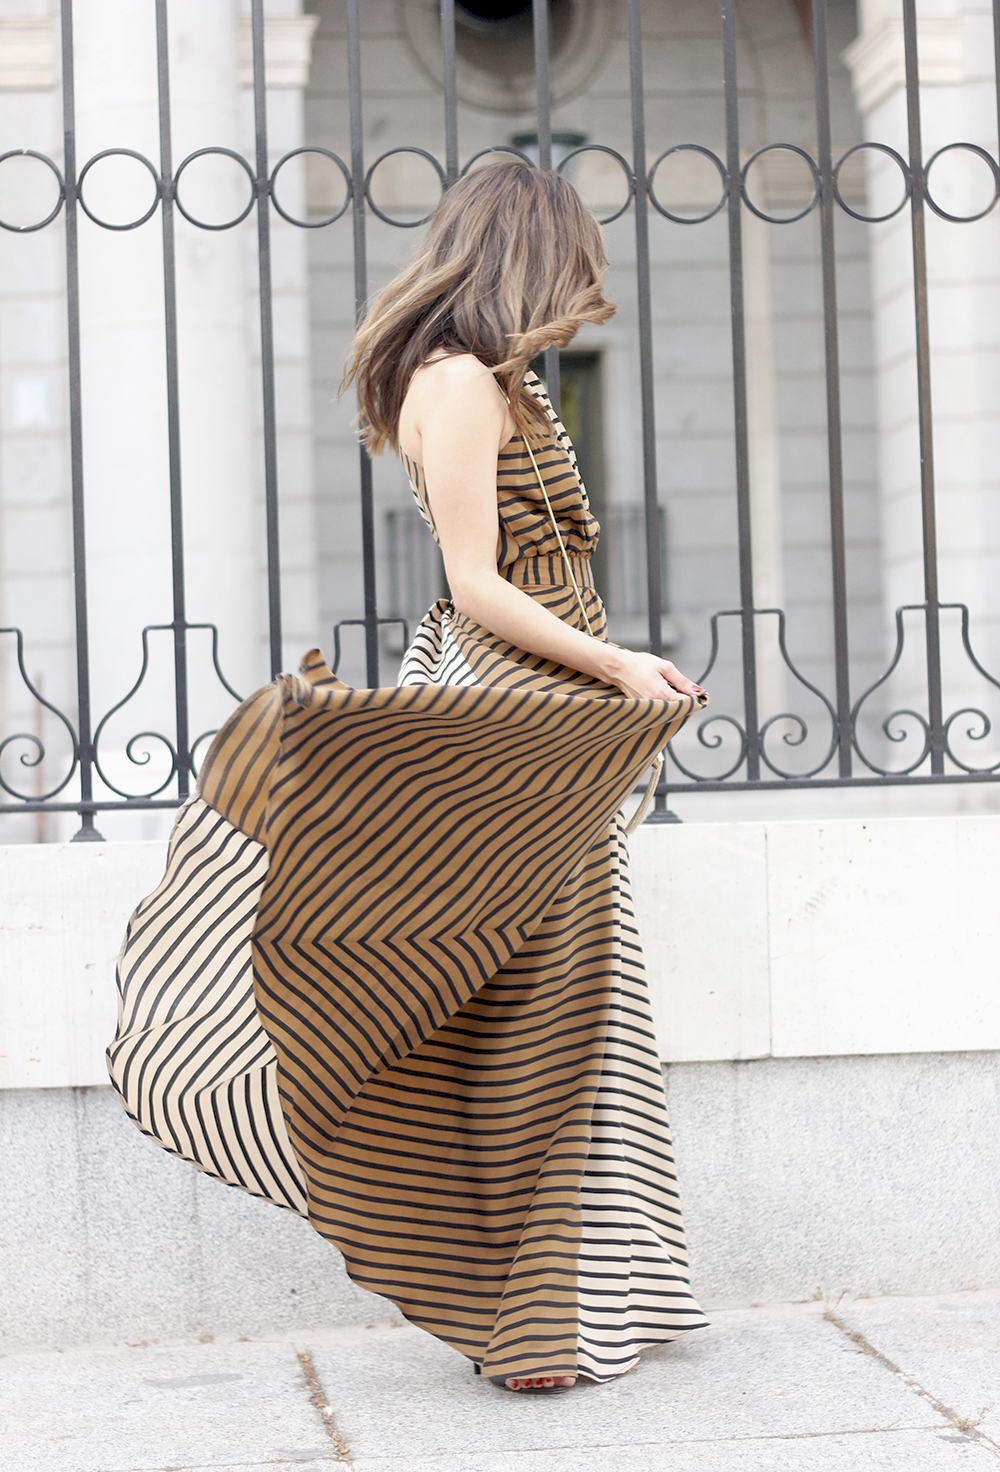 Maxi Striped Dress summer outfit sunnies uterqüe black sandals style fashion10